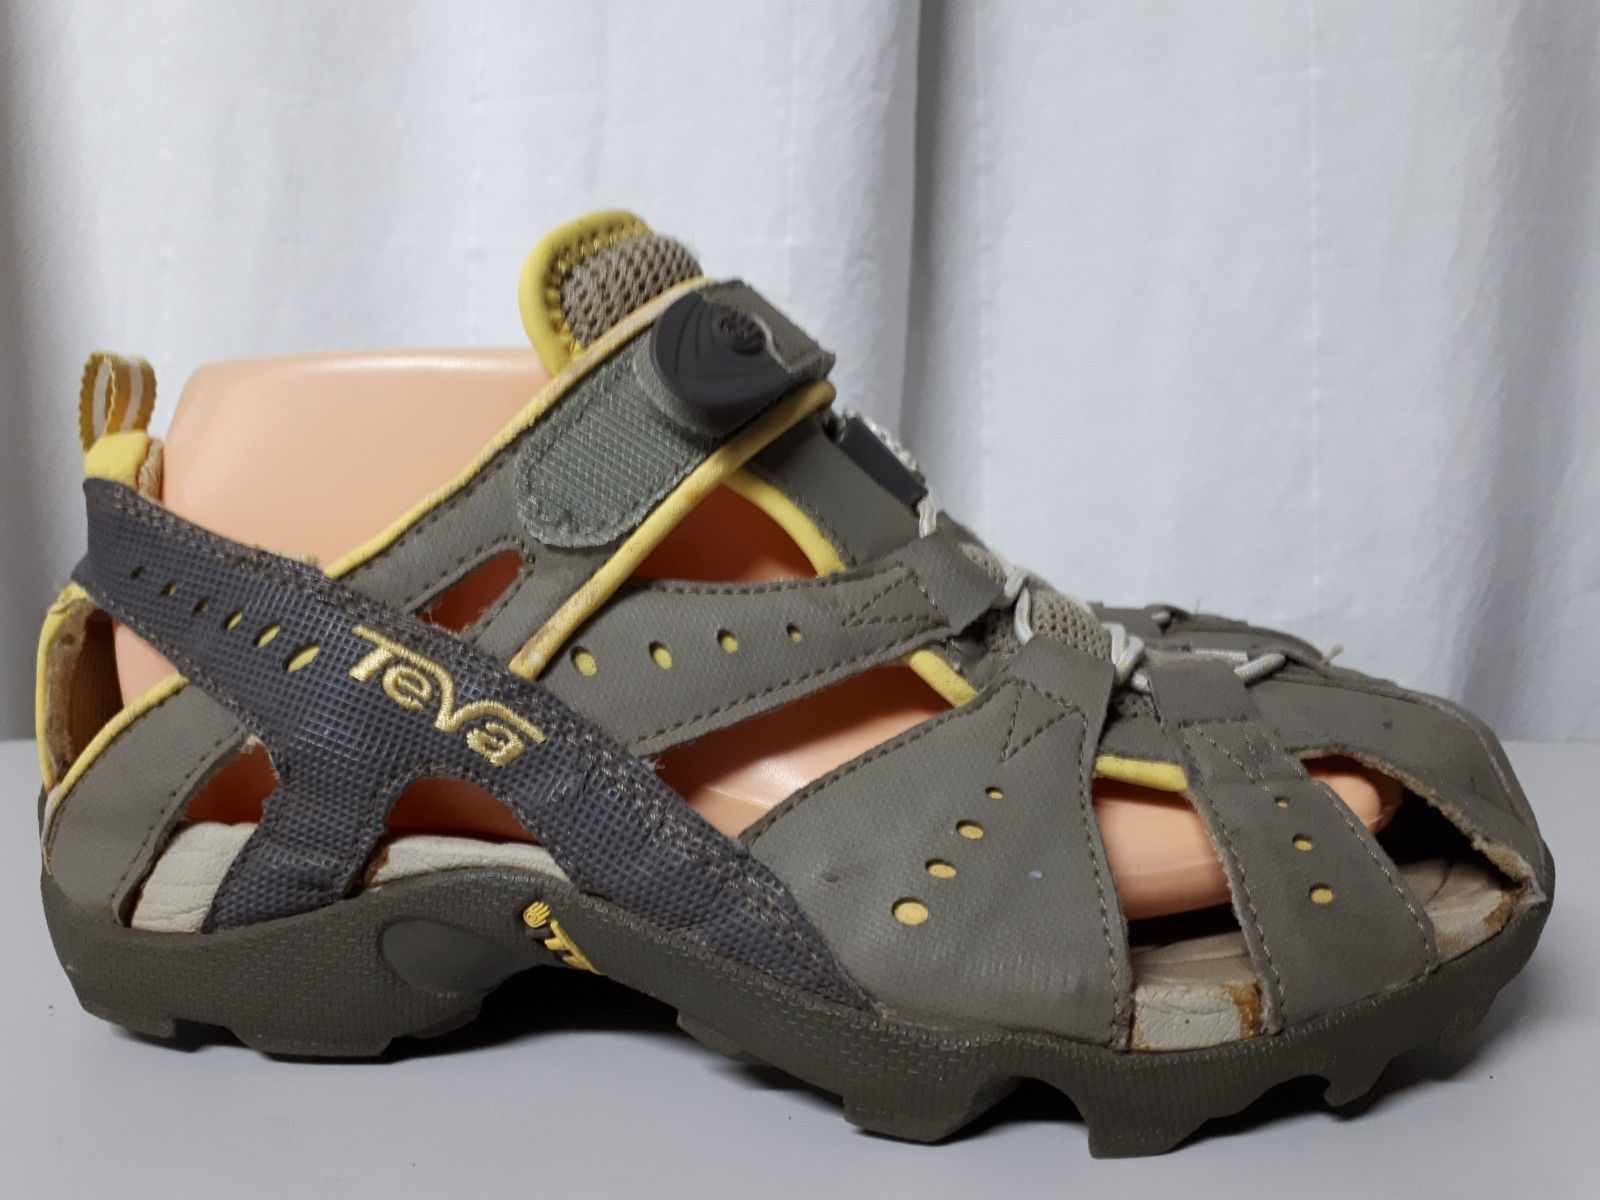 898e3ec3c TEVA gray sport sandal closed toe S N 6944